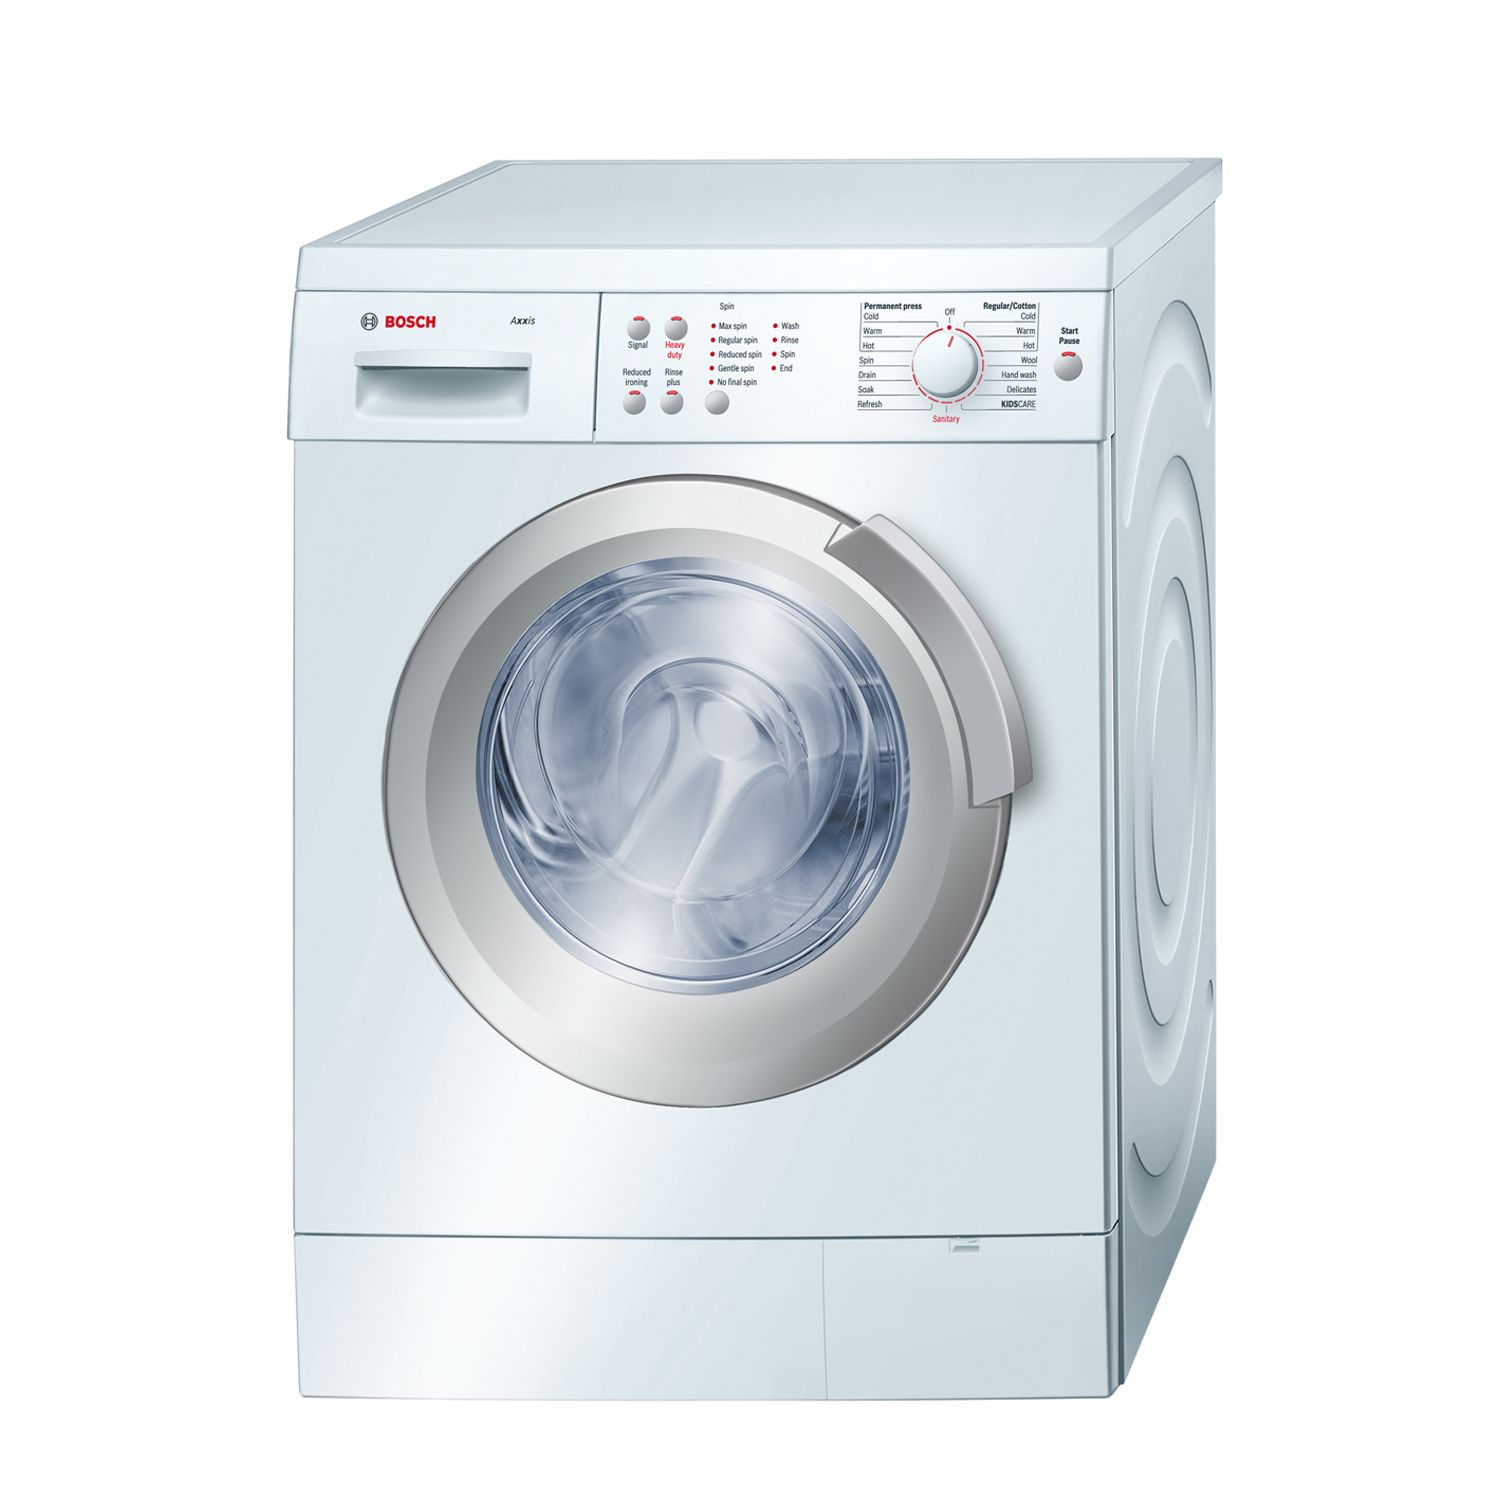 Axxis Front-load Washing Machine 2.2 cubic feet